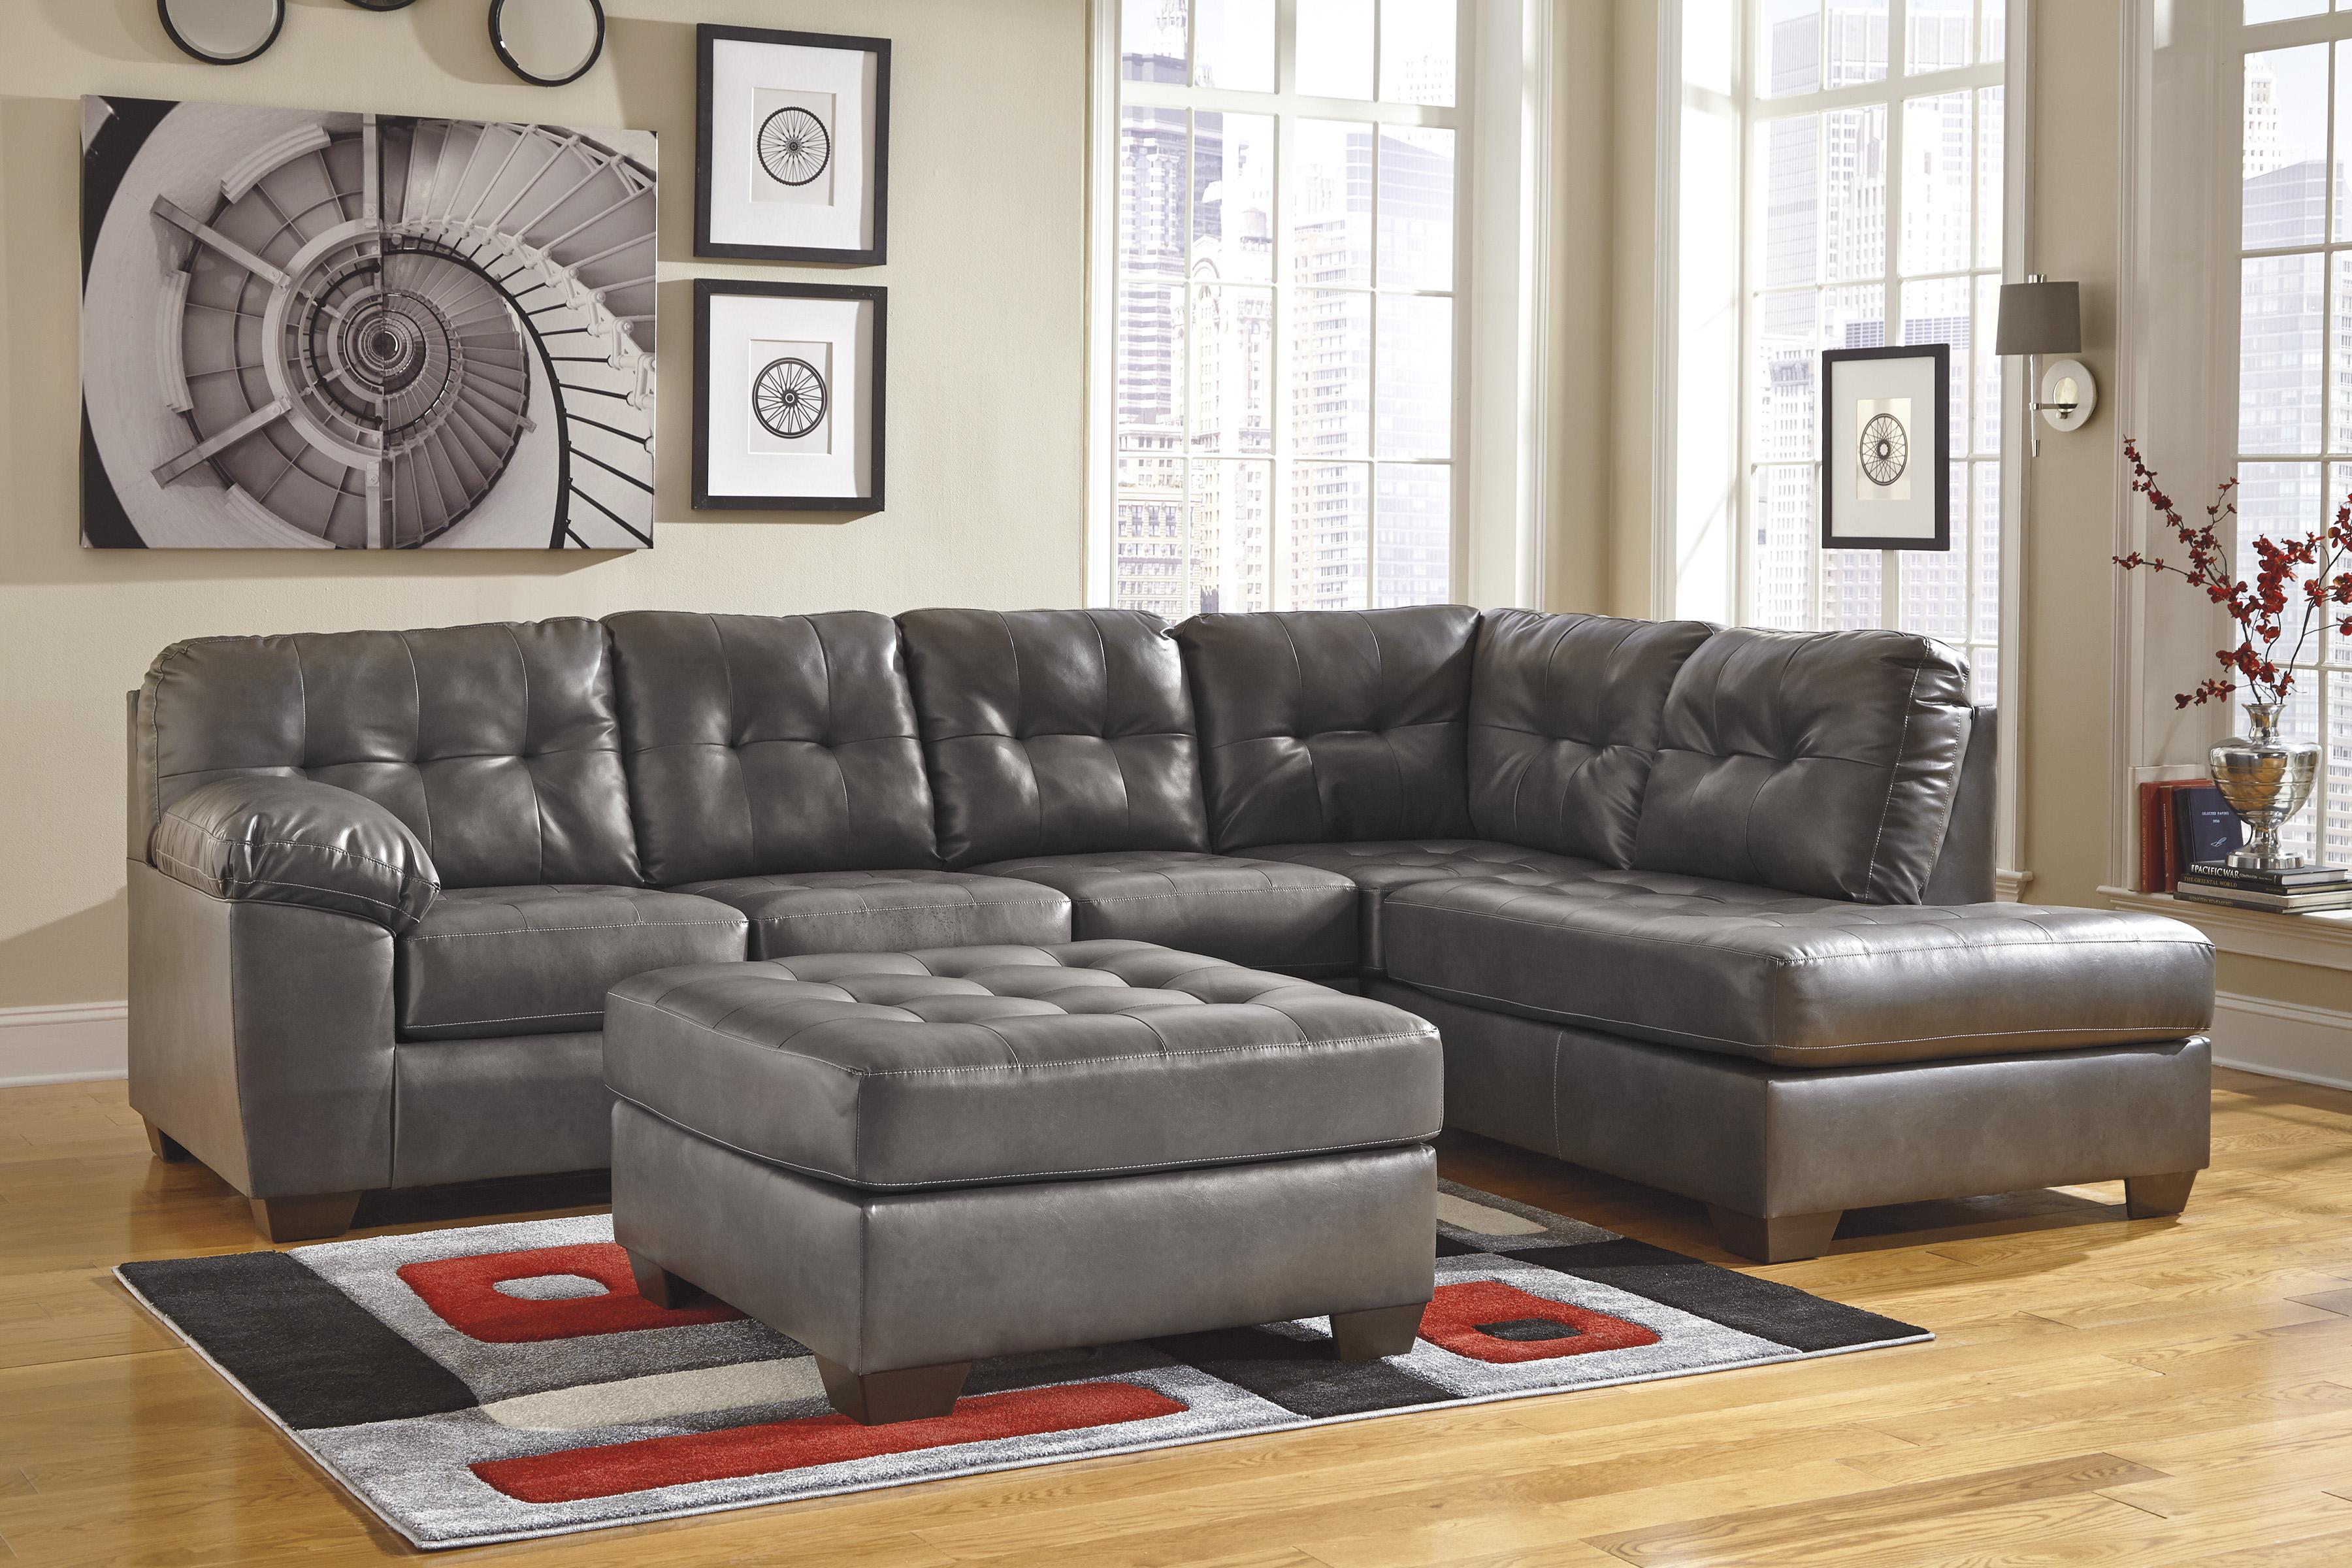 chairs leather real modern tone sectional fabric grey sofas sectionals design sofa and dual